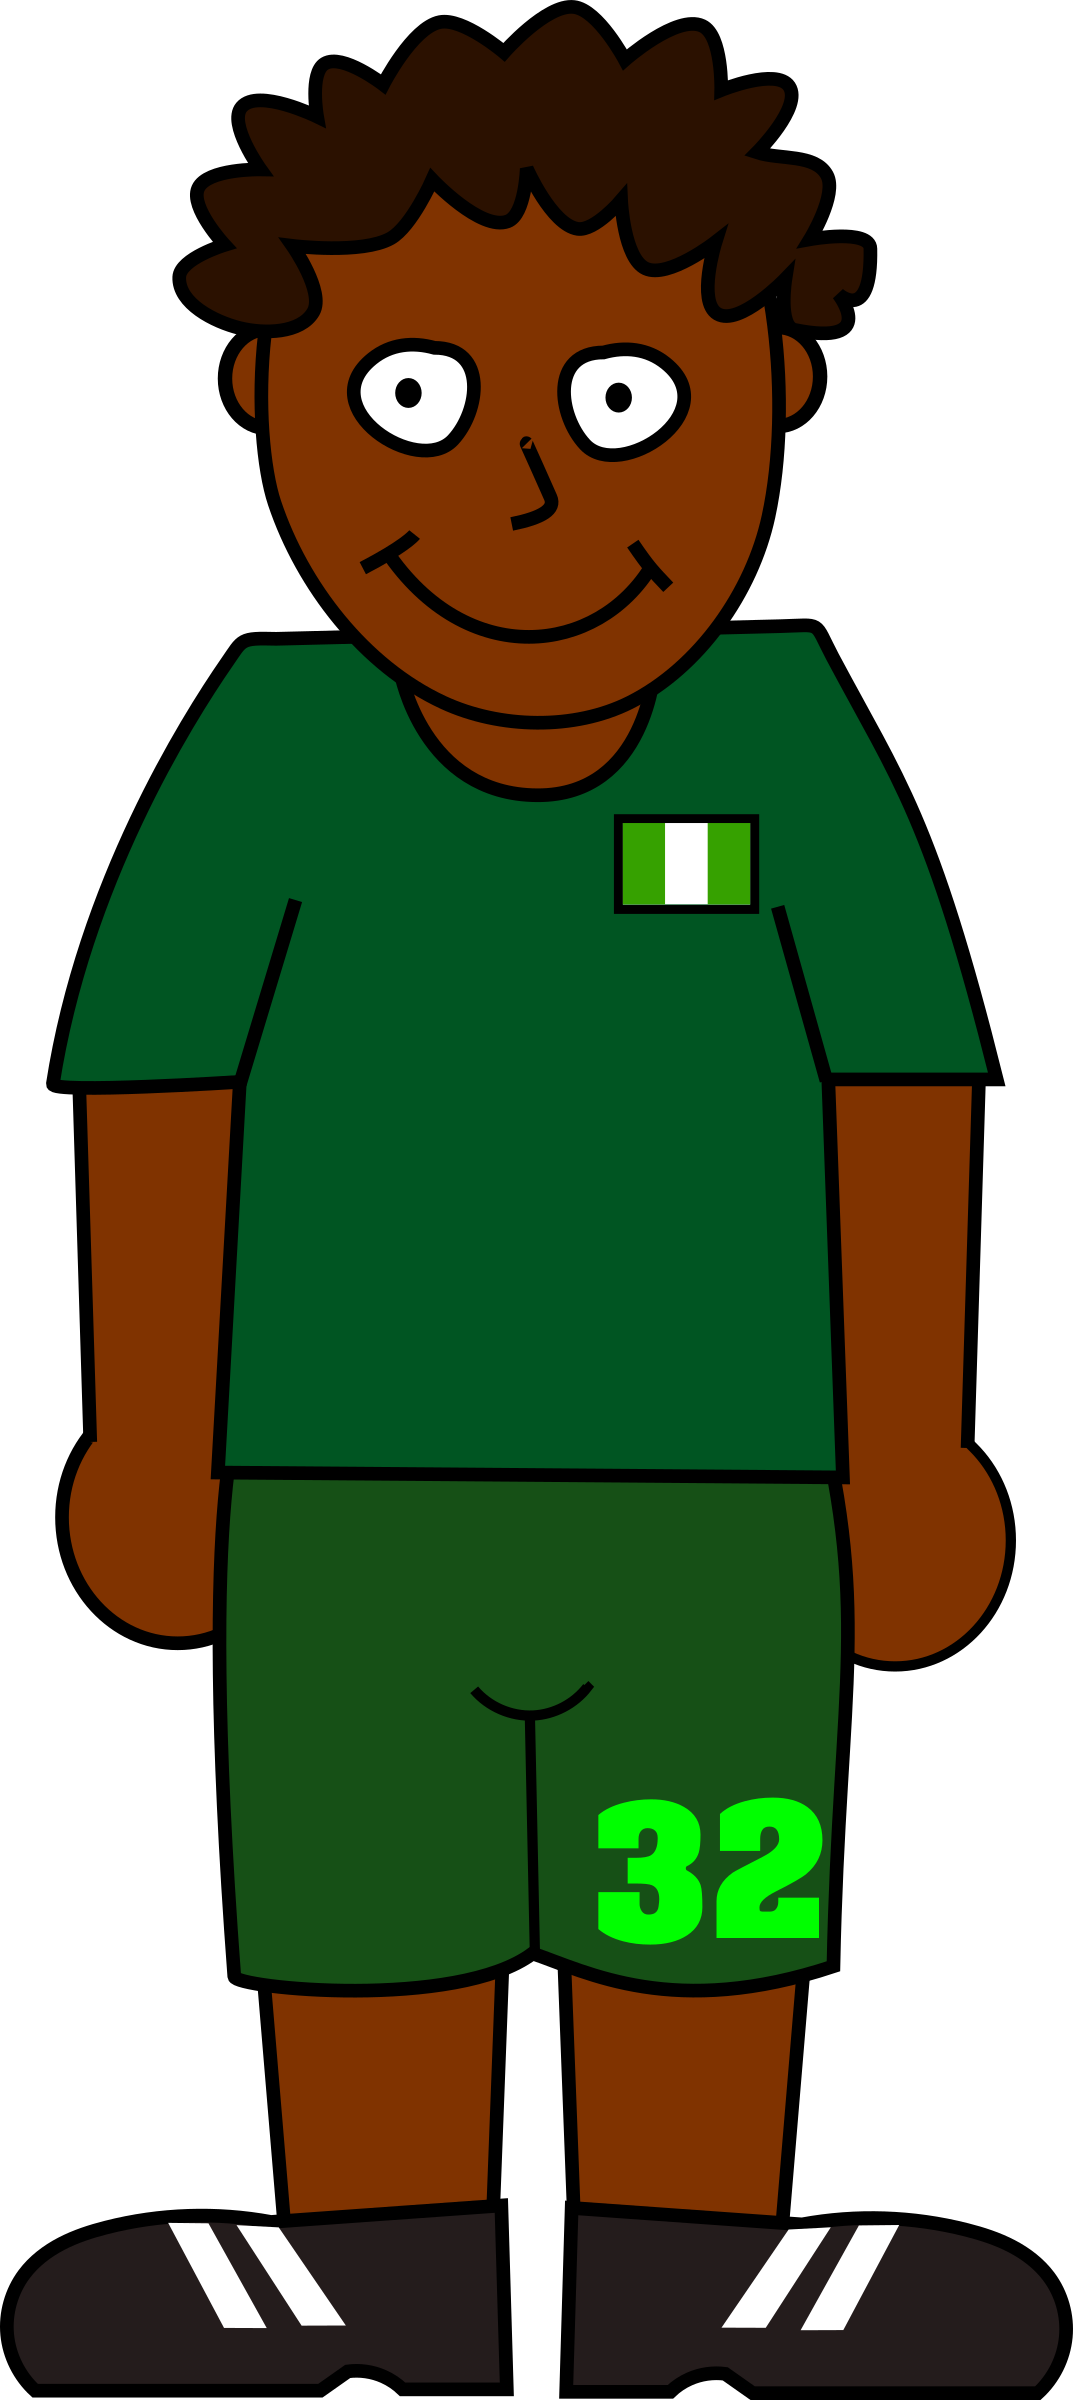 Football player nigeria by Bingenberg